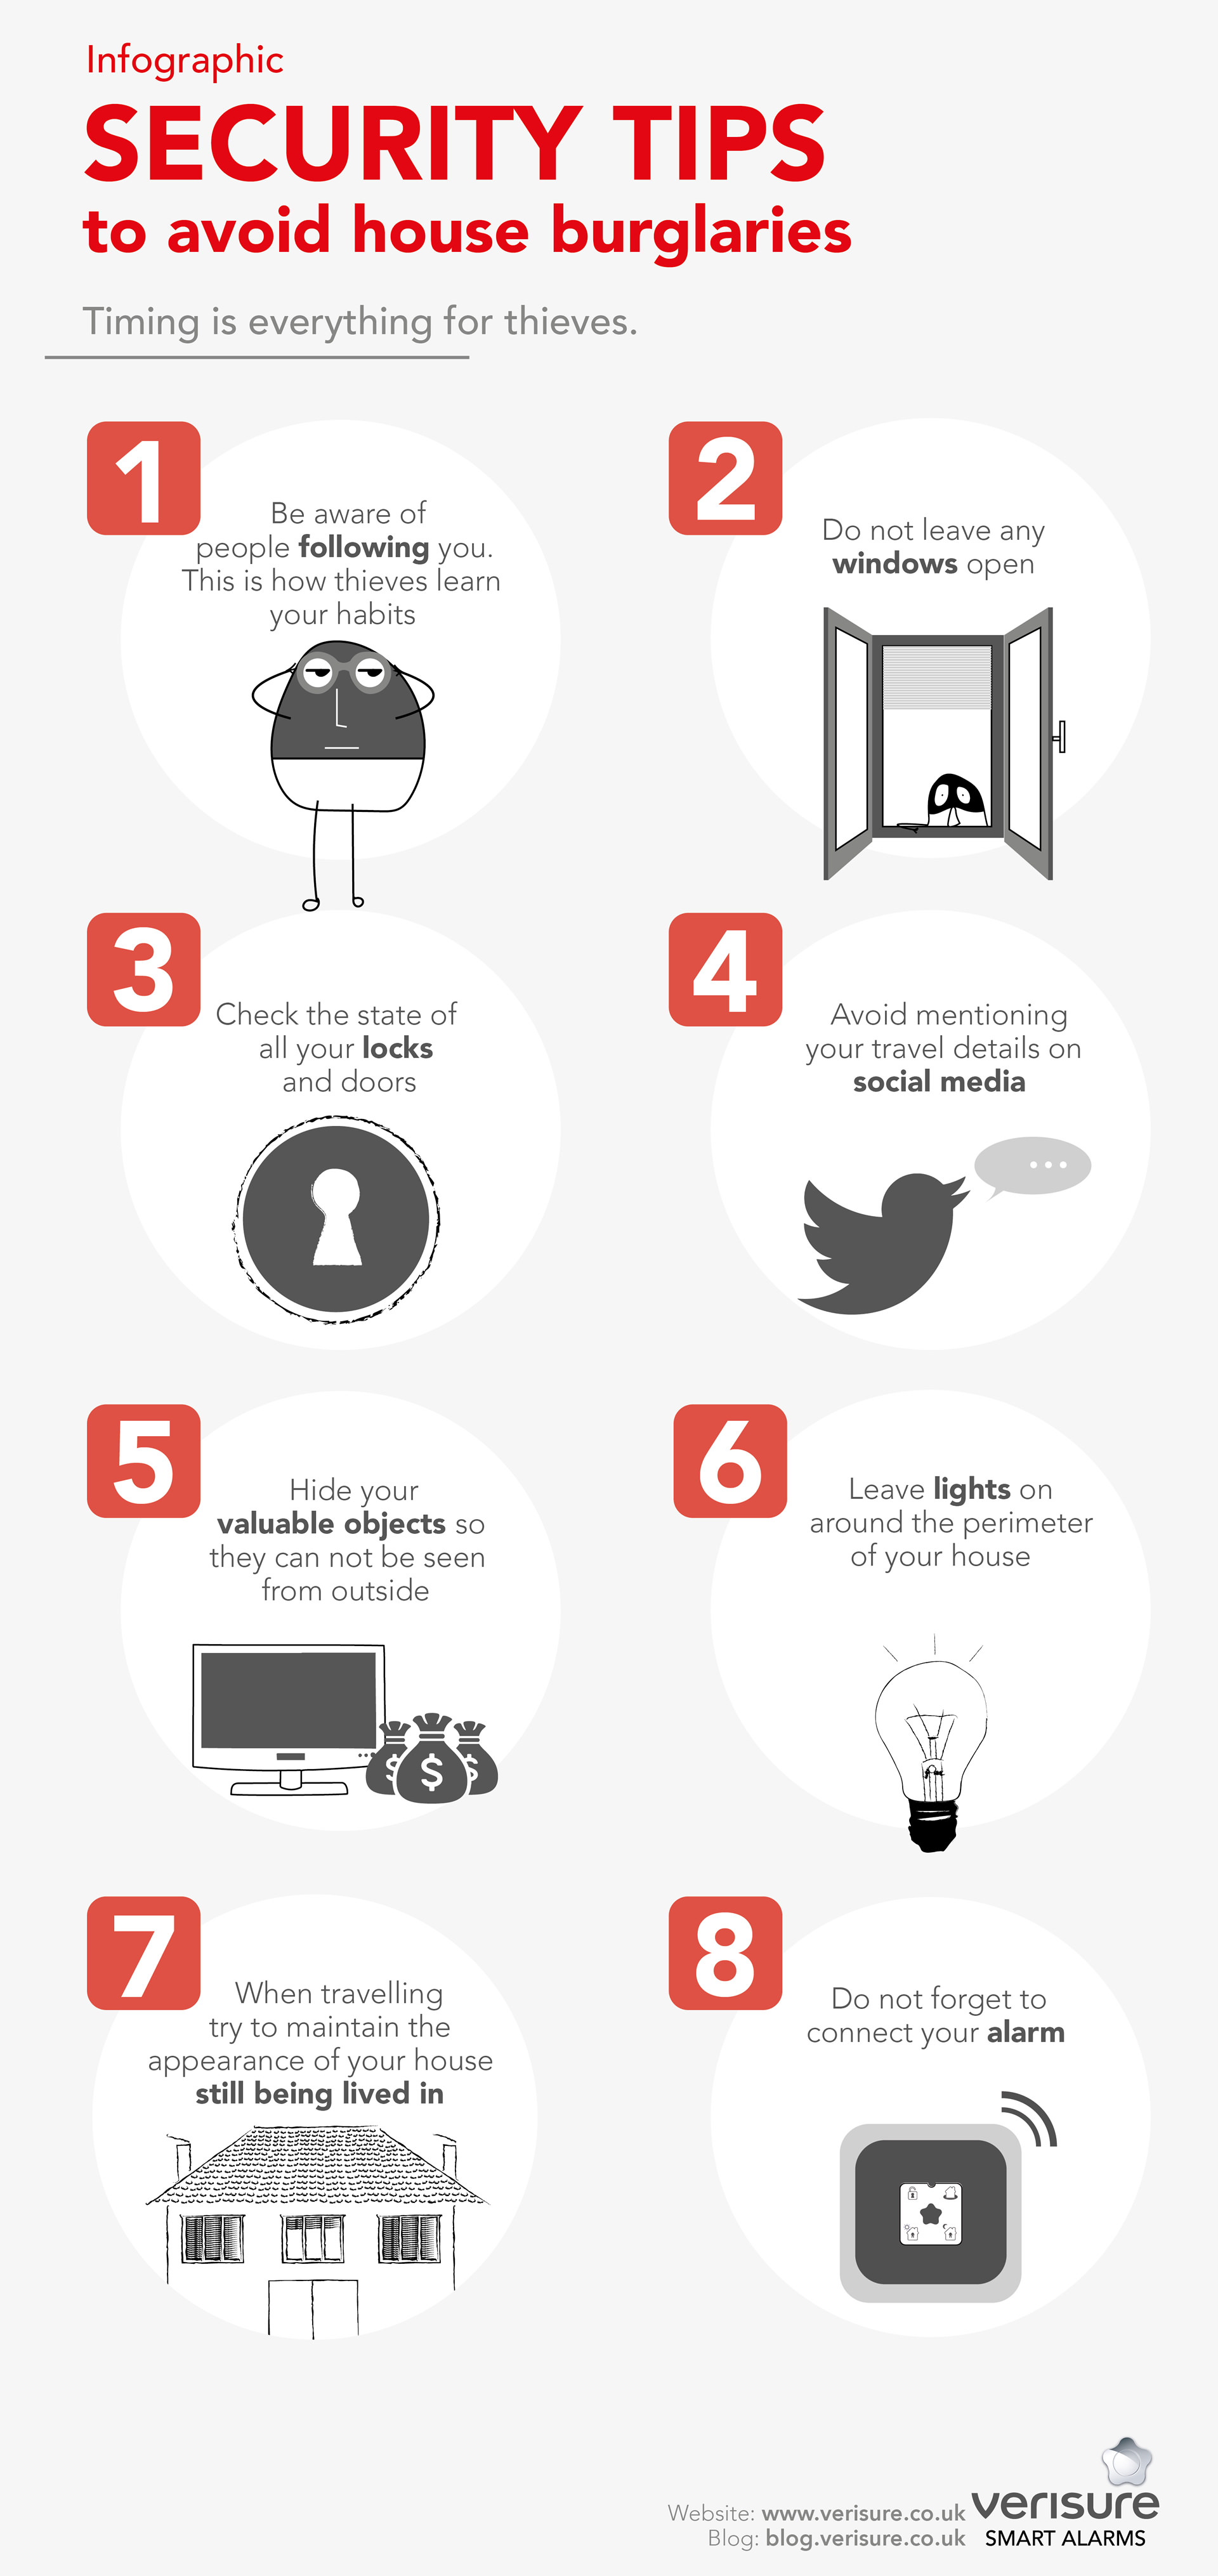 infographic Security tips to avoid burglary - Verisure Smart Alarms